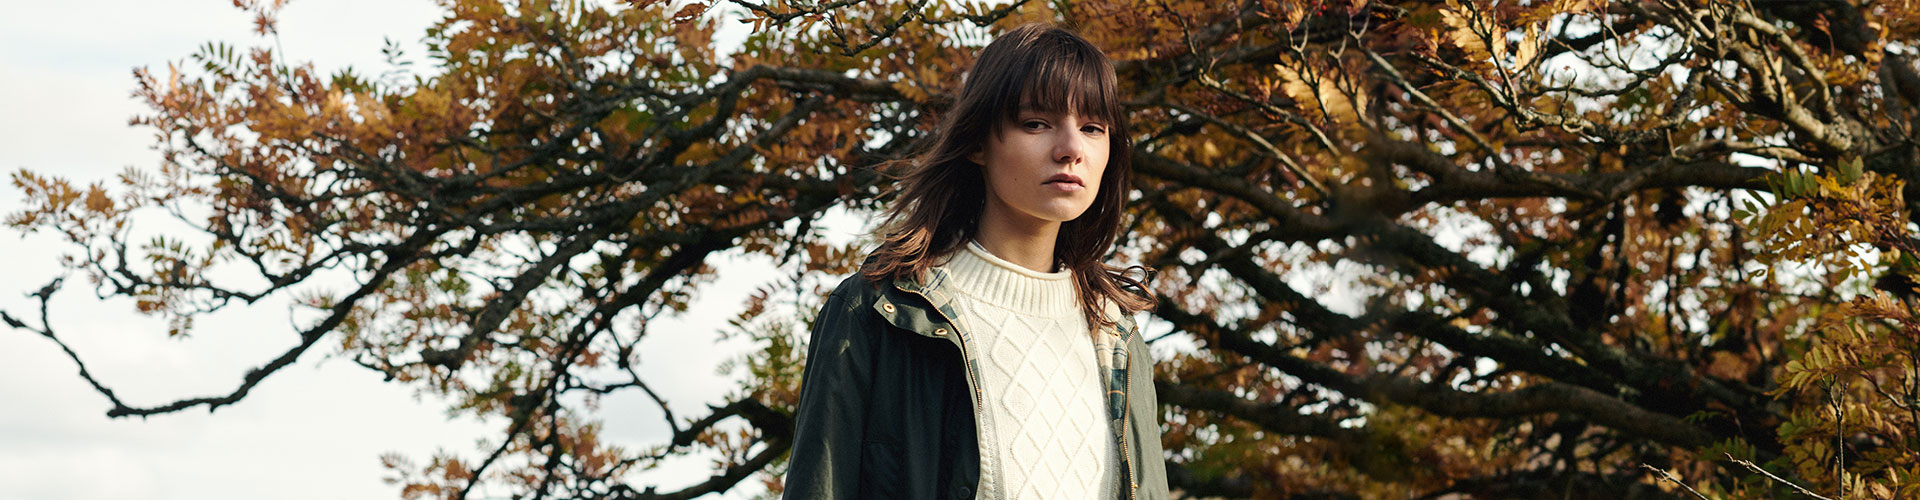 The Barbour Modern Country womenswear collection styled on model